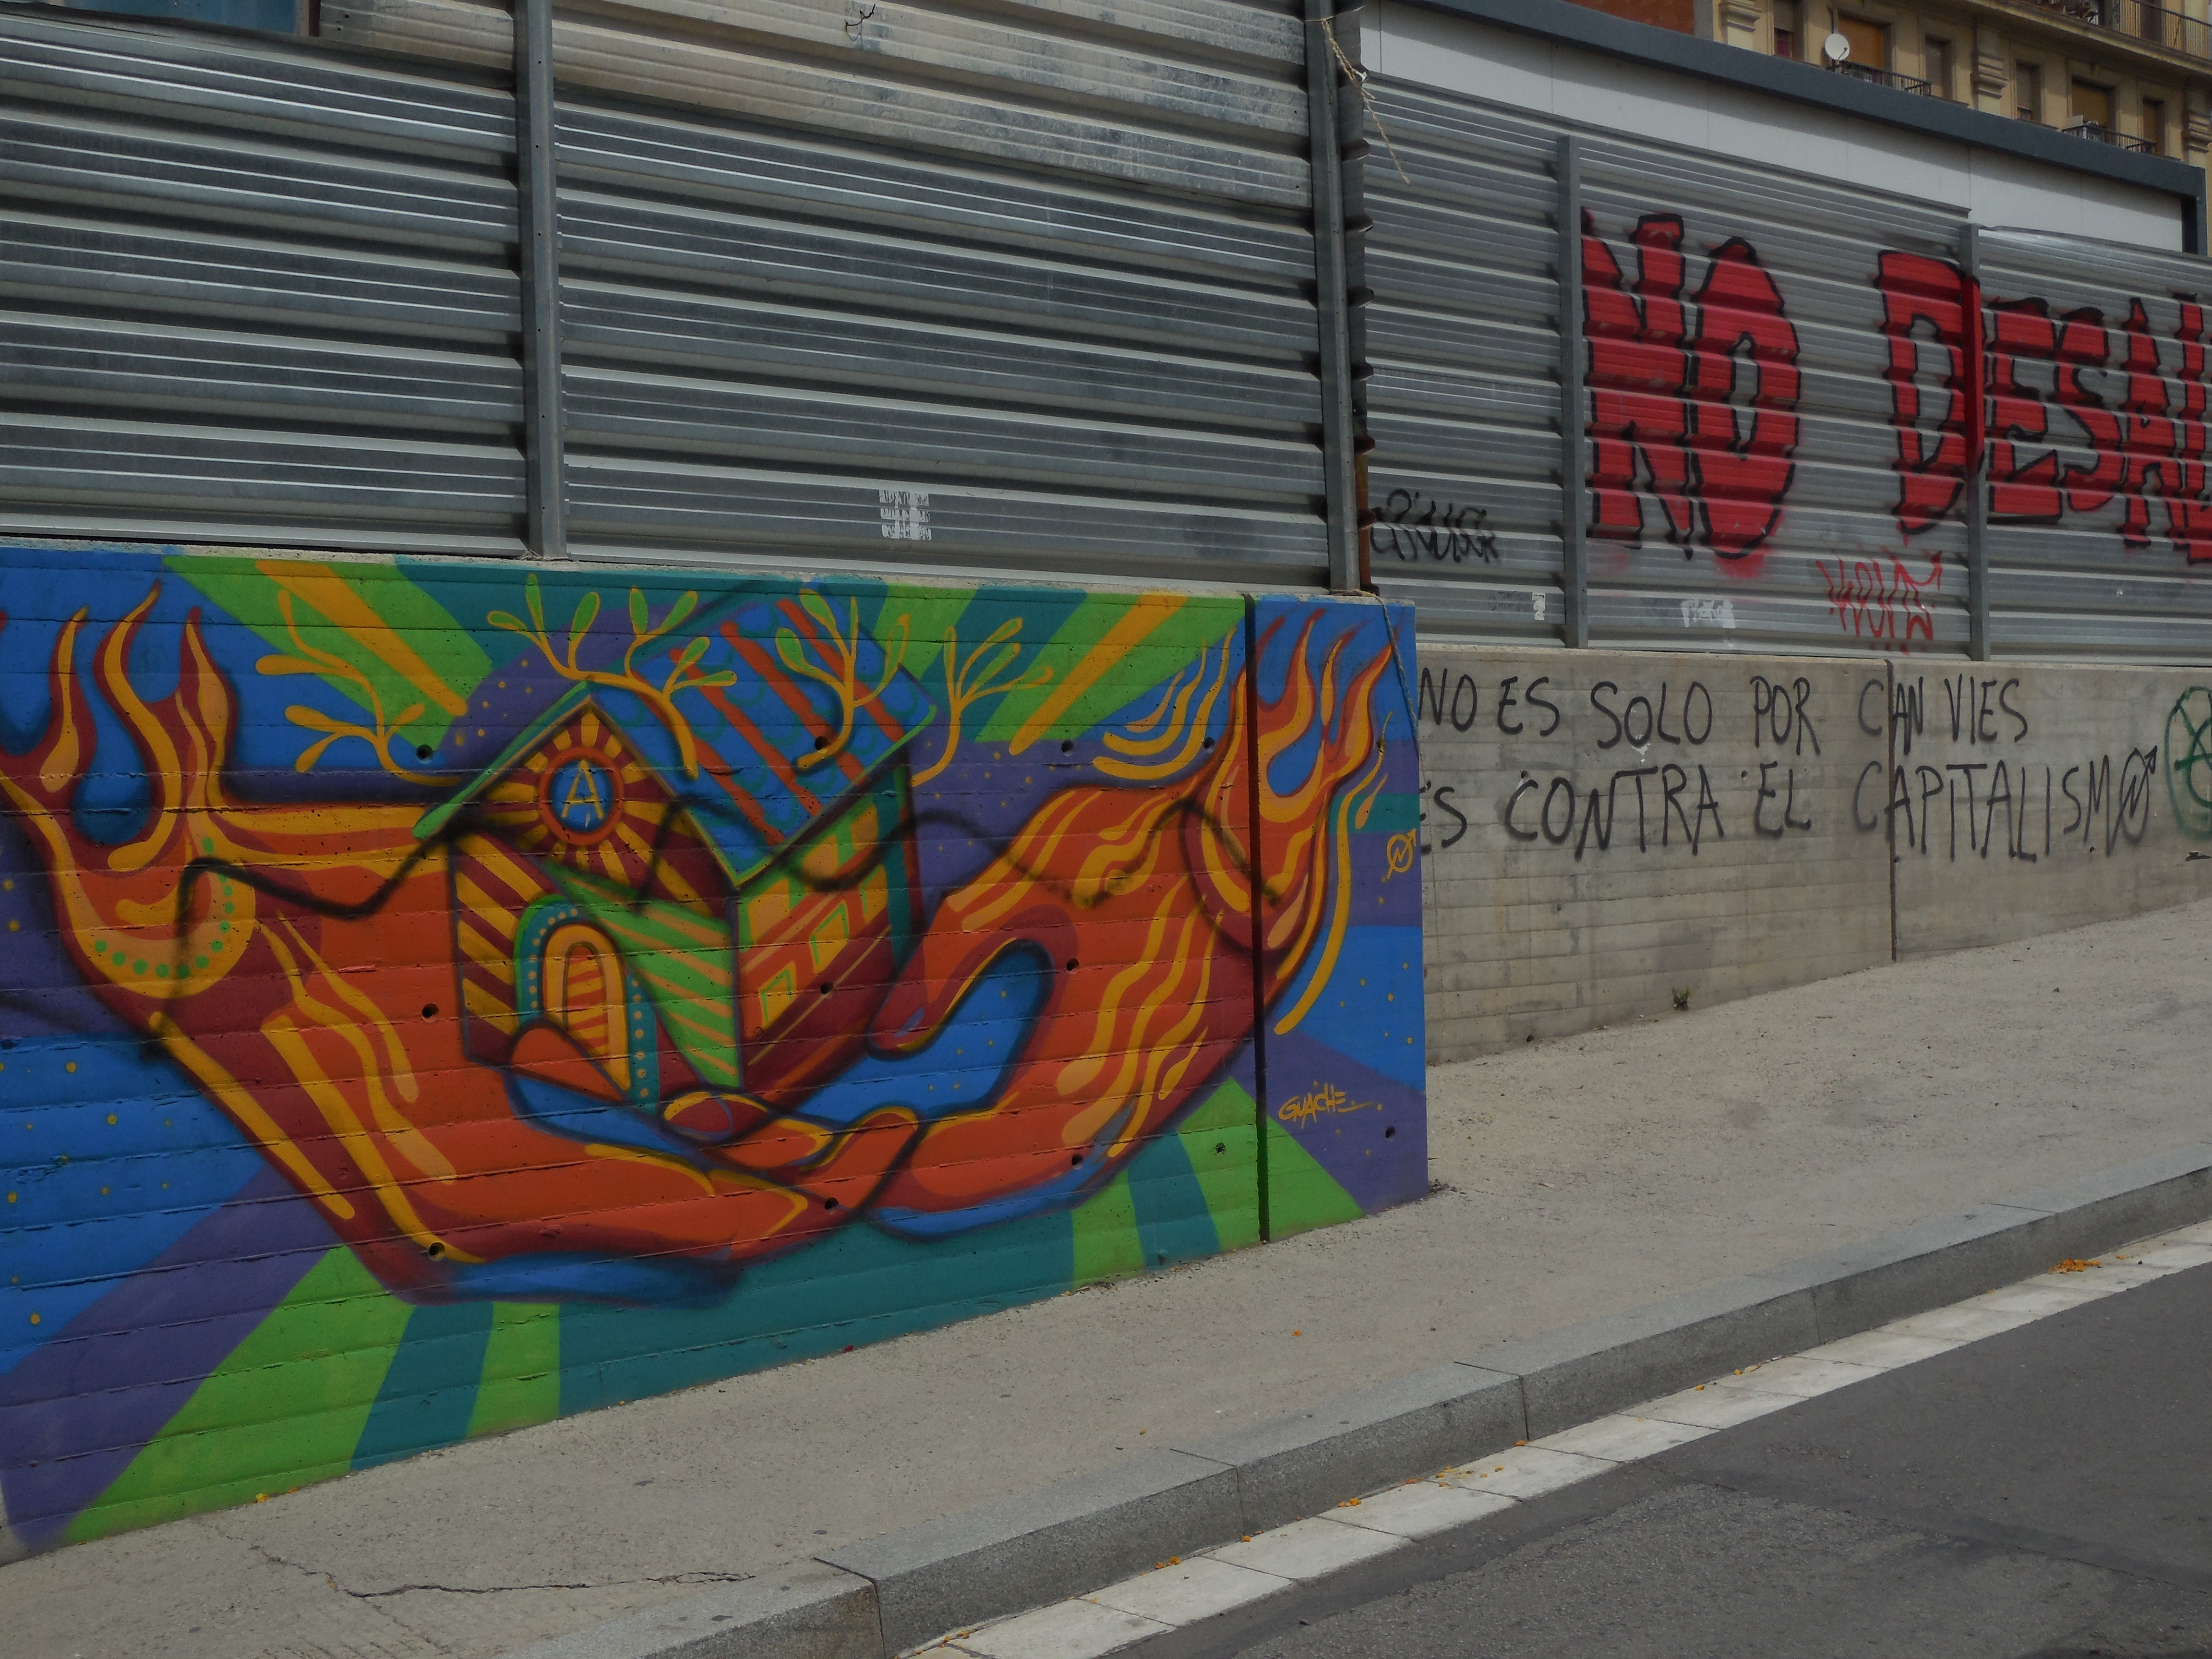 """""""It's not just for Can Vies, its against capitalism"""" Mural near CanVies"""